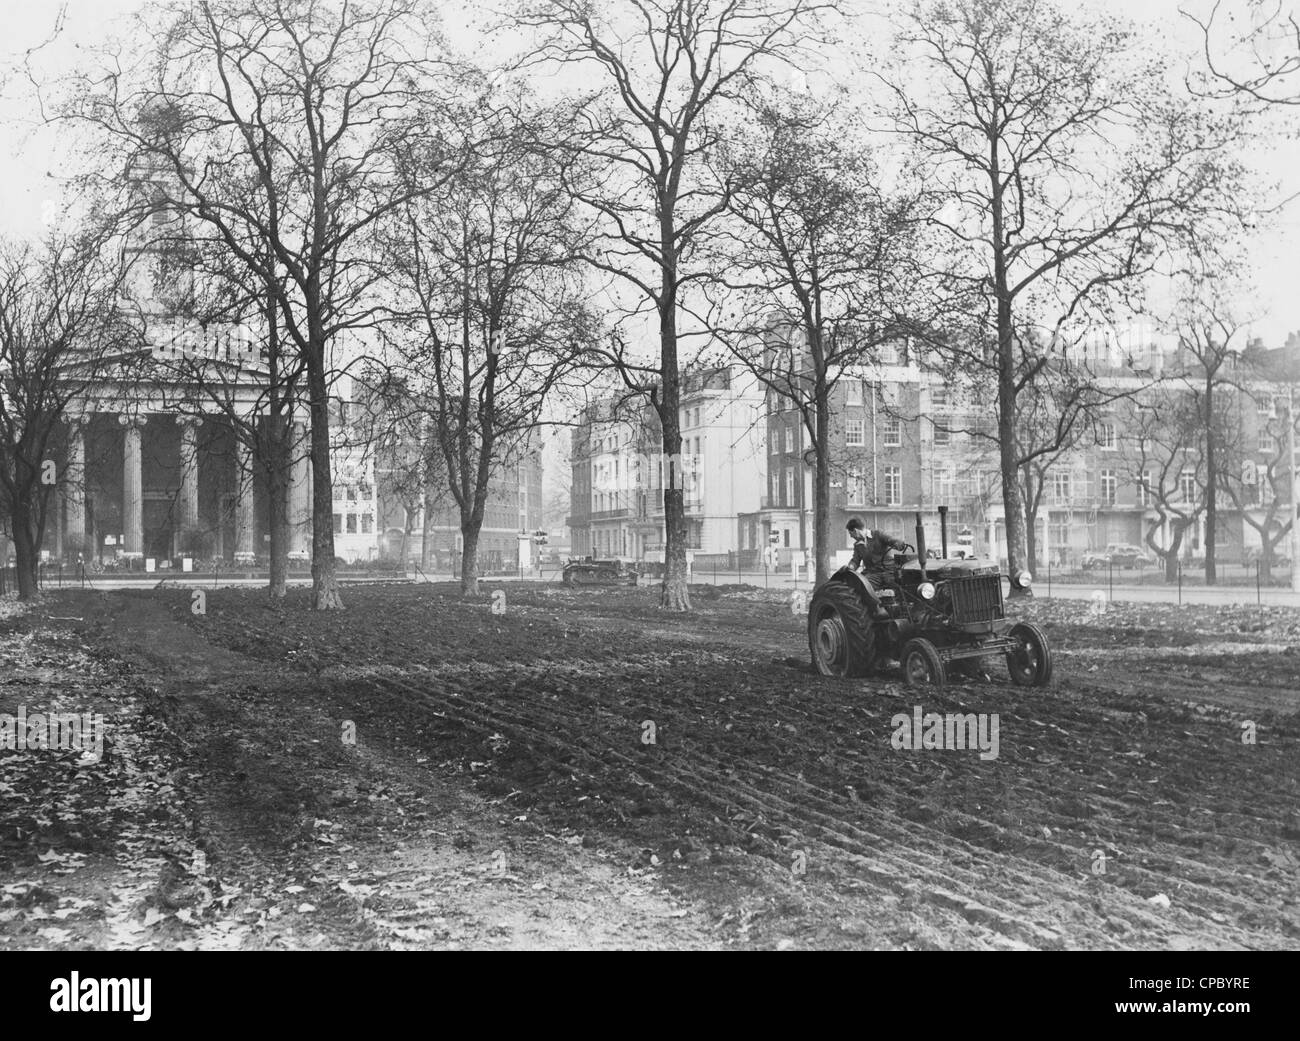 Eaton Square, Belgravia. A vintage Fordson tractor drawing a plough in Eaton Square, which is being cleaned up in - Stock Image